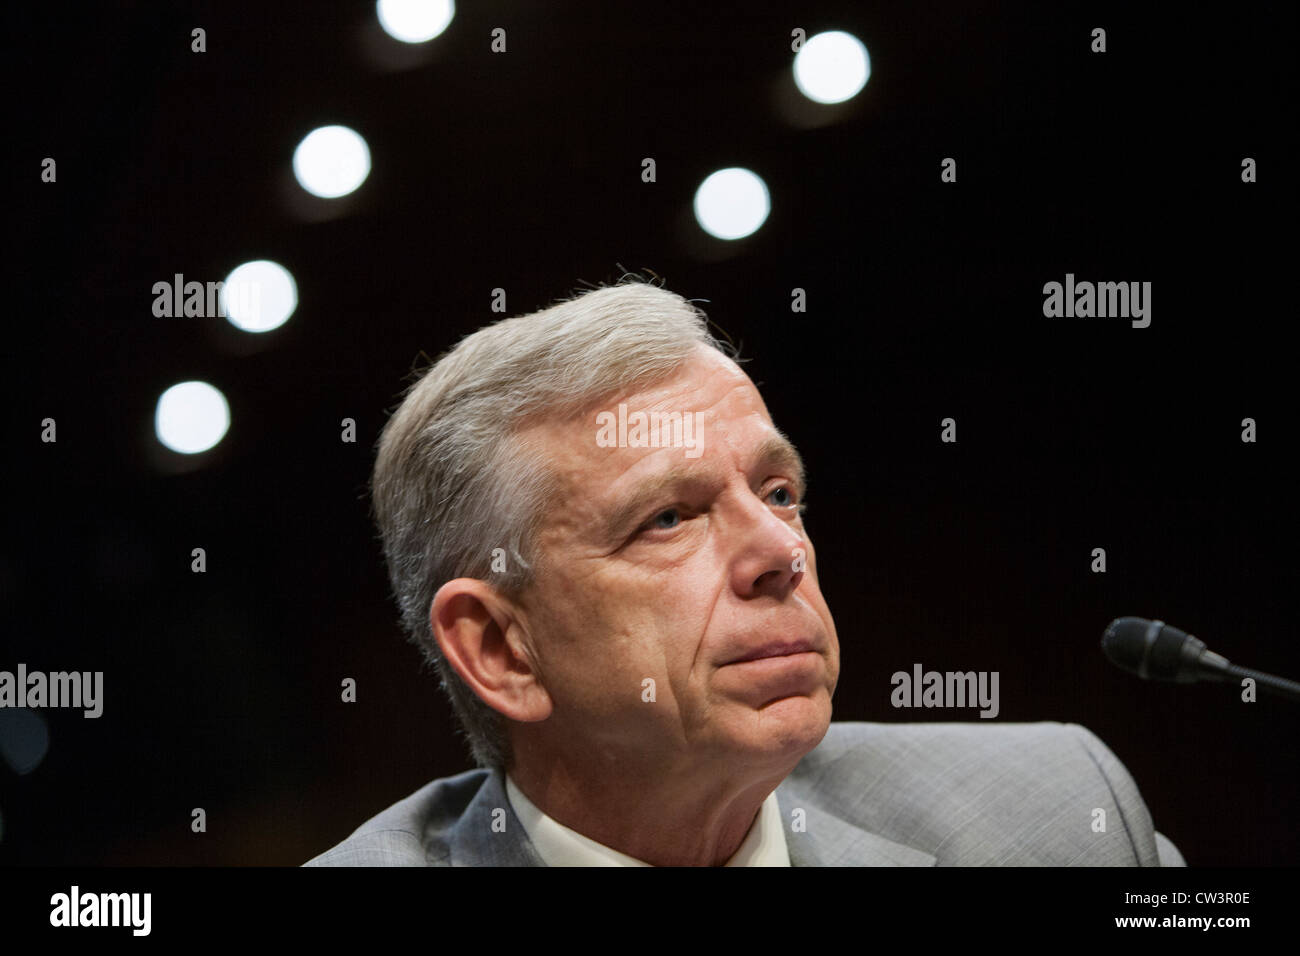 Lowell McAdam, President and Chief Executive Officer of Verizon.  Stock Photo